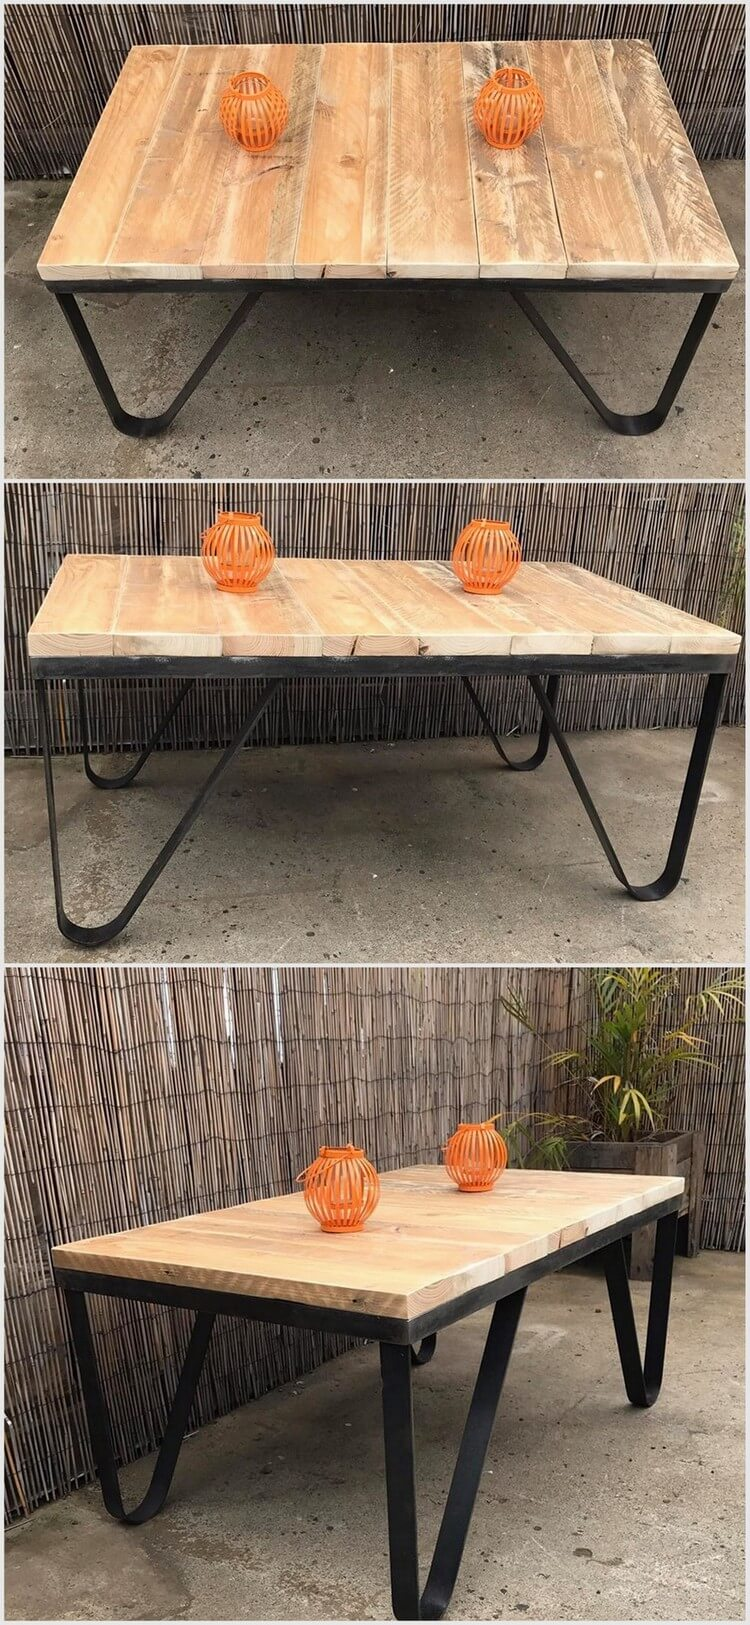 Wood Pallet Table with Metal Legs